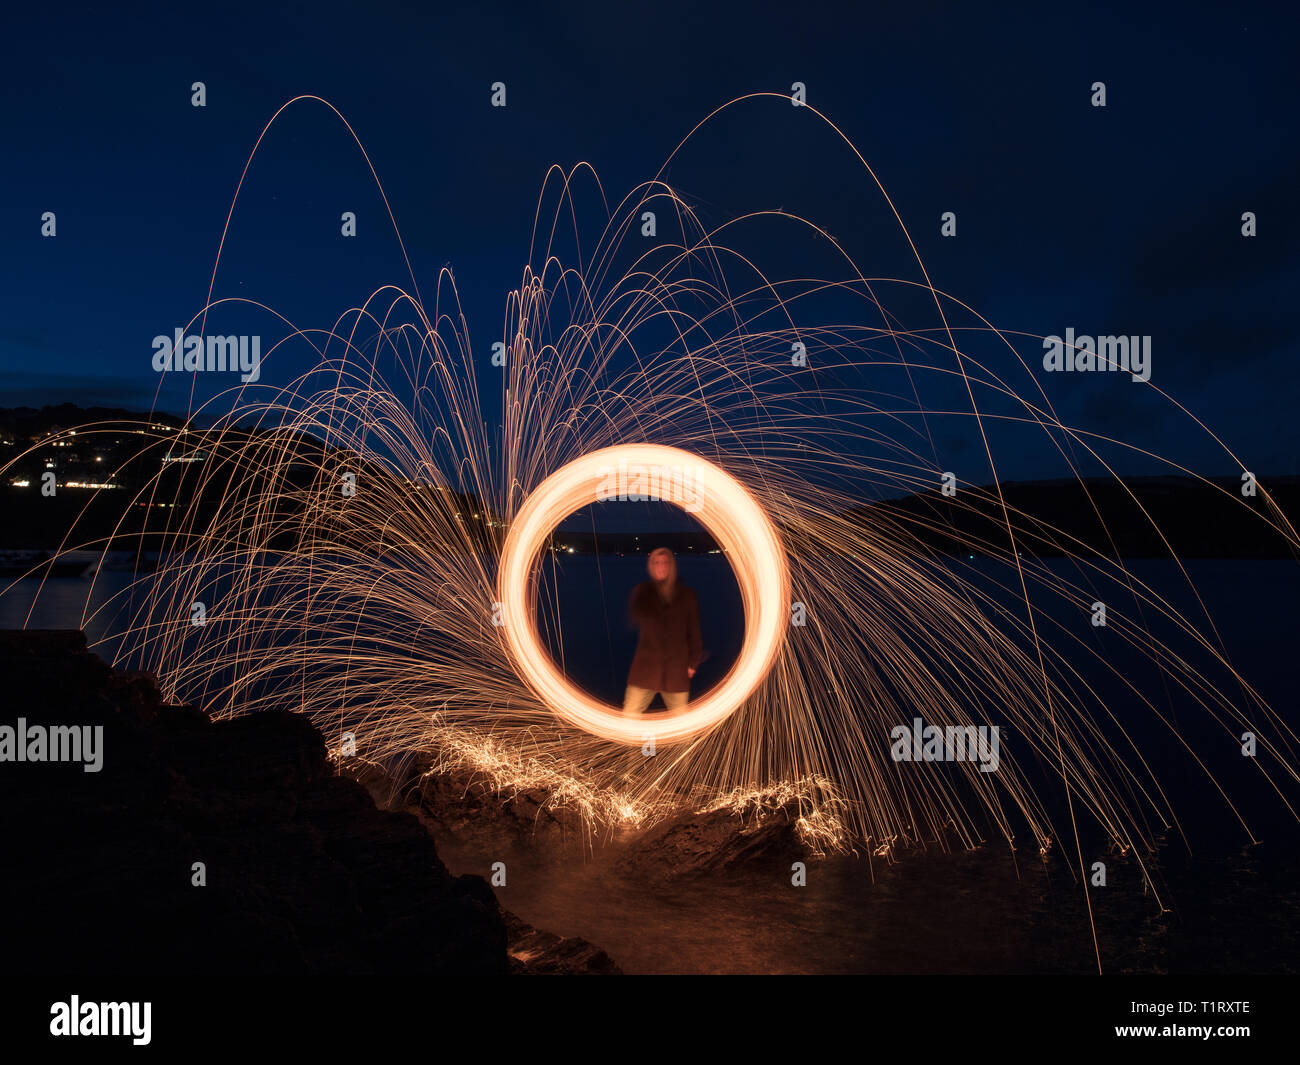 A steel wool shot on Splat Cove in Devon. Steel wool photography involves using a whisk,steel wool and a dog lead. Stock Photo